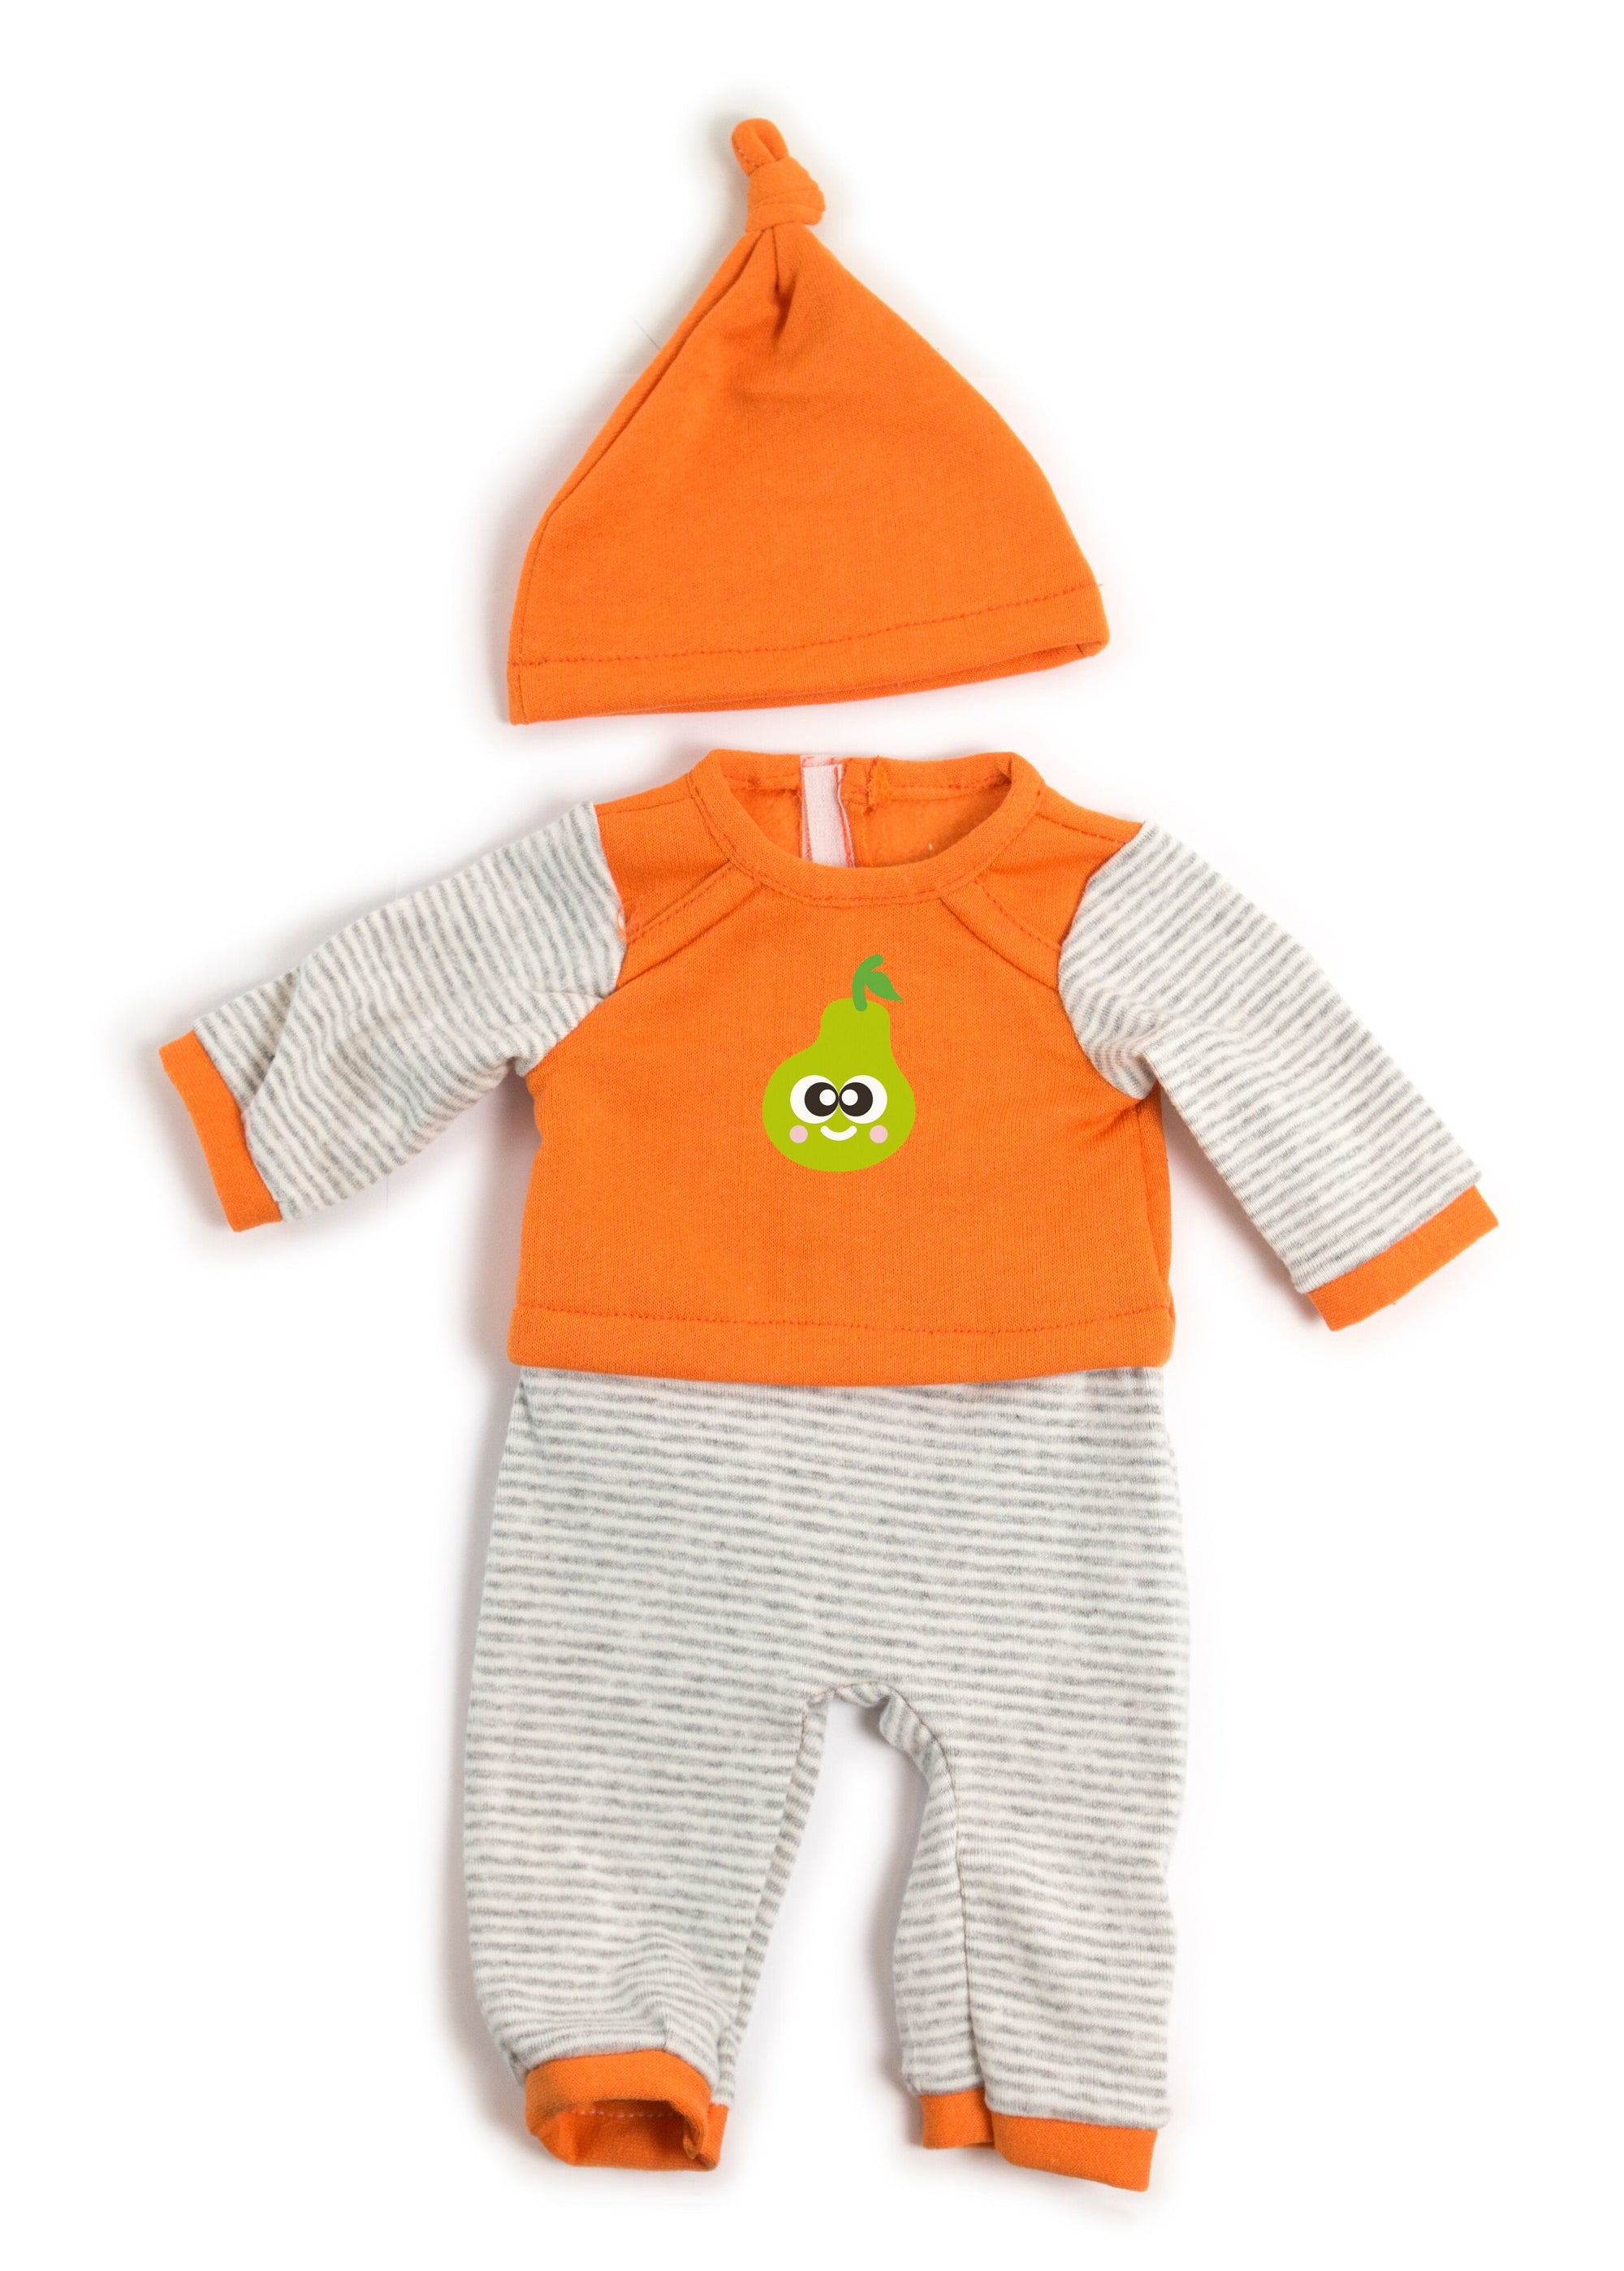 Miniland Orange Striped Pyjamas